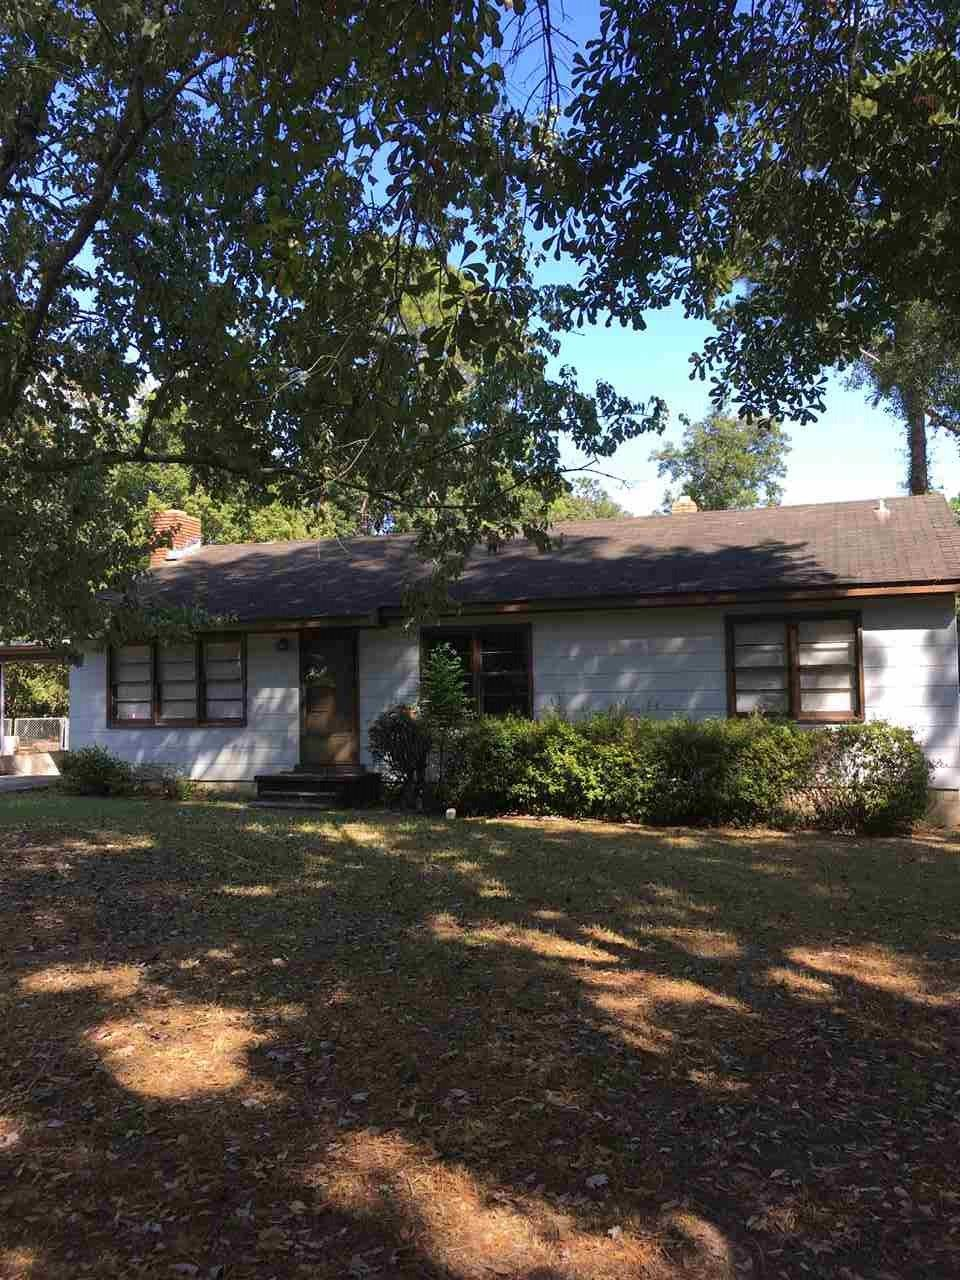 1707 Monticello Drive, Tallahassee, FL 32303 - MLS#: 311609